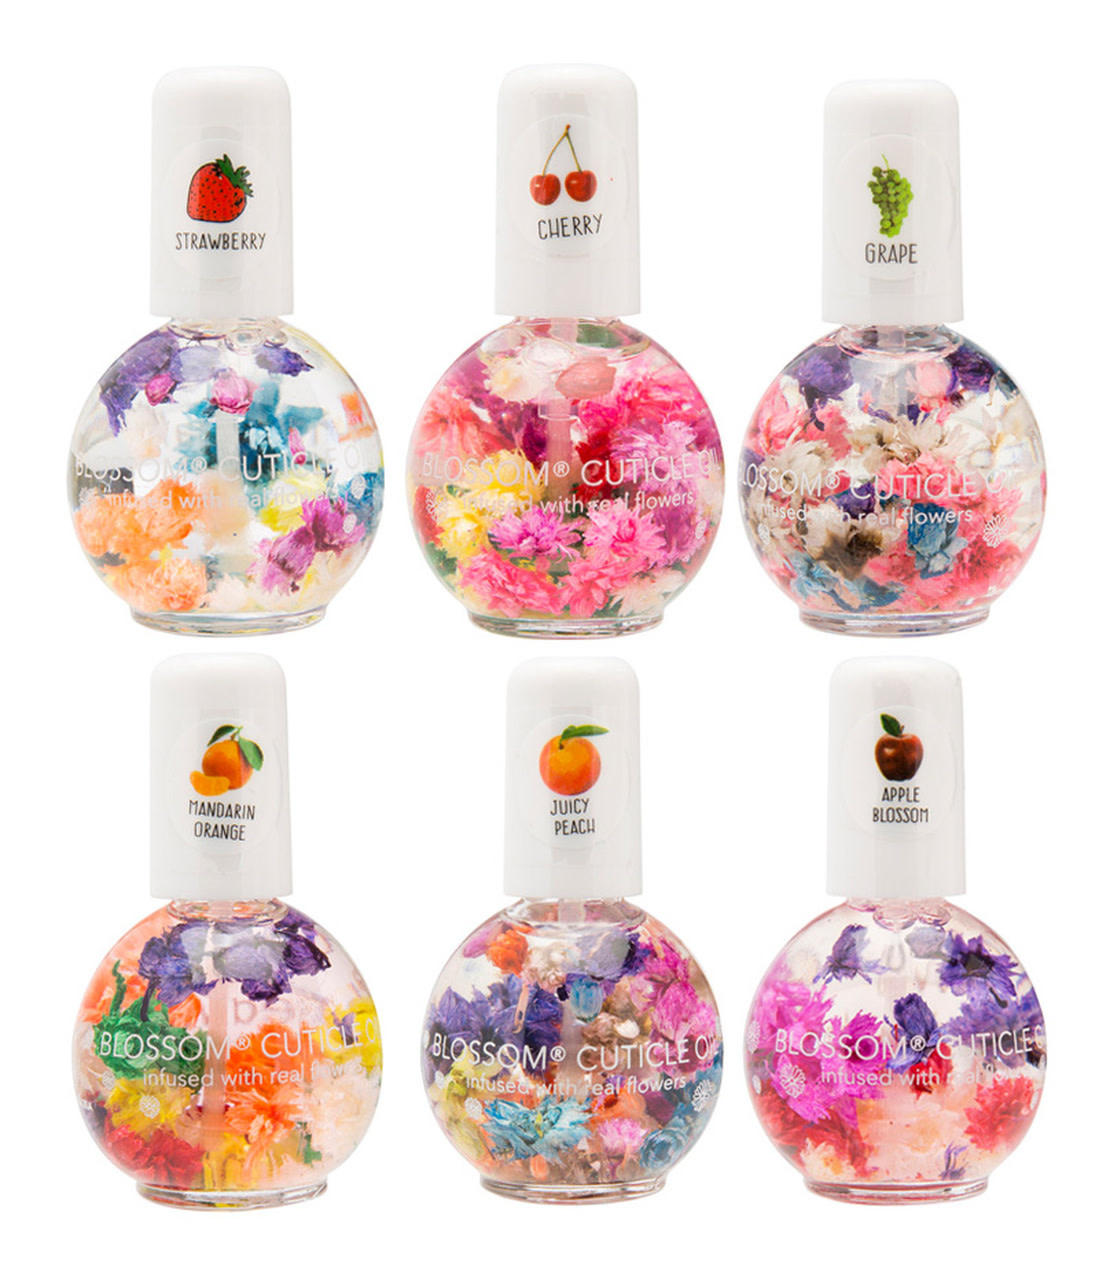 Blossom Fruit Scented 0.5oz Cuticle Oil (Box of 18)